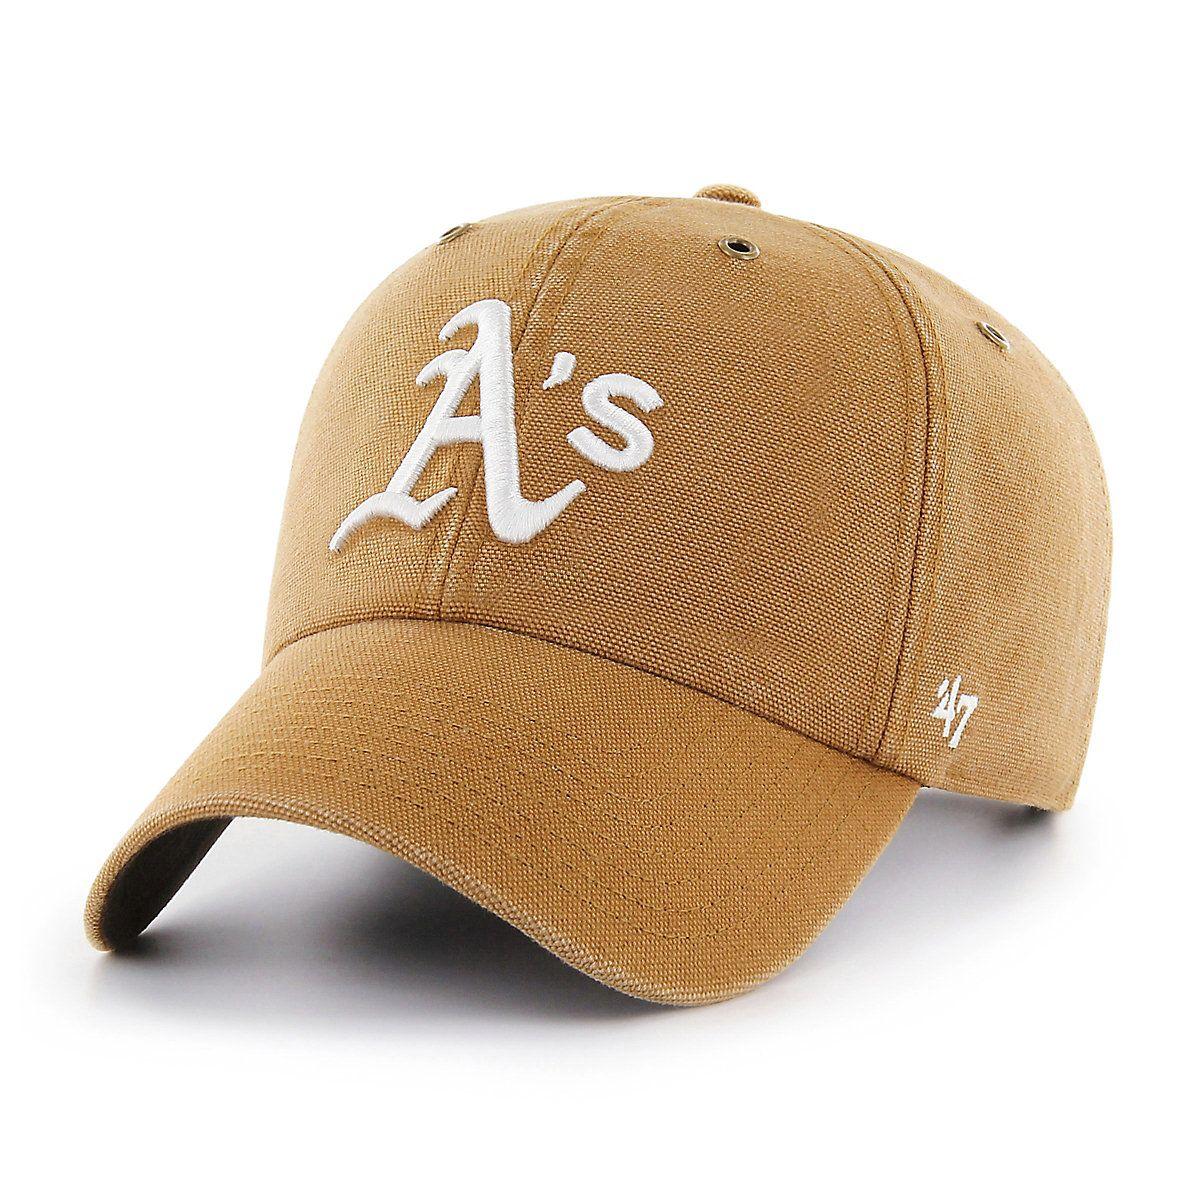 82cfbfa551856 Shop the Carhartt x  47 Oakland Athletics Lansdowne  47 Clean Up for Men s  at Carhartt.com for Men s Hats that works as hard as you do.